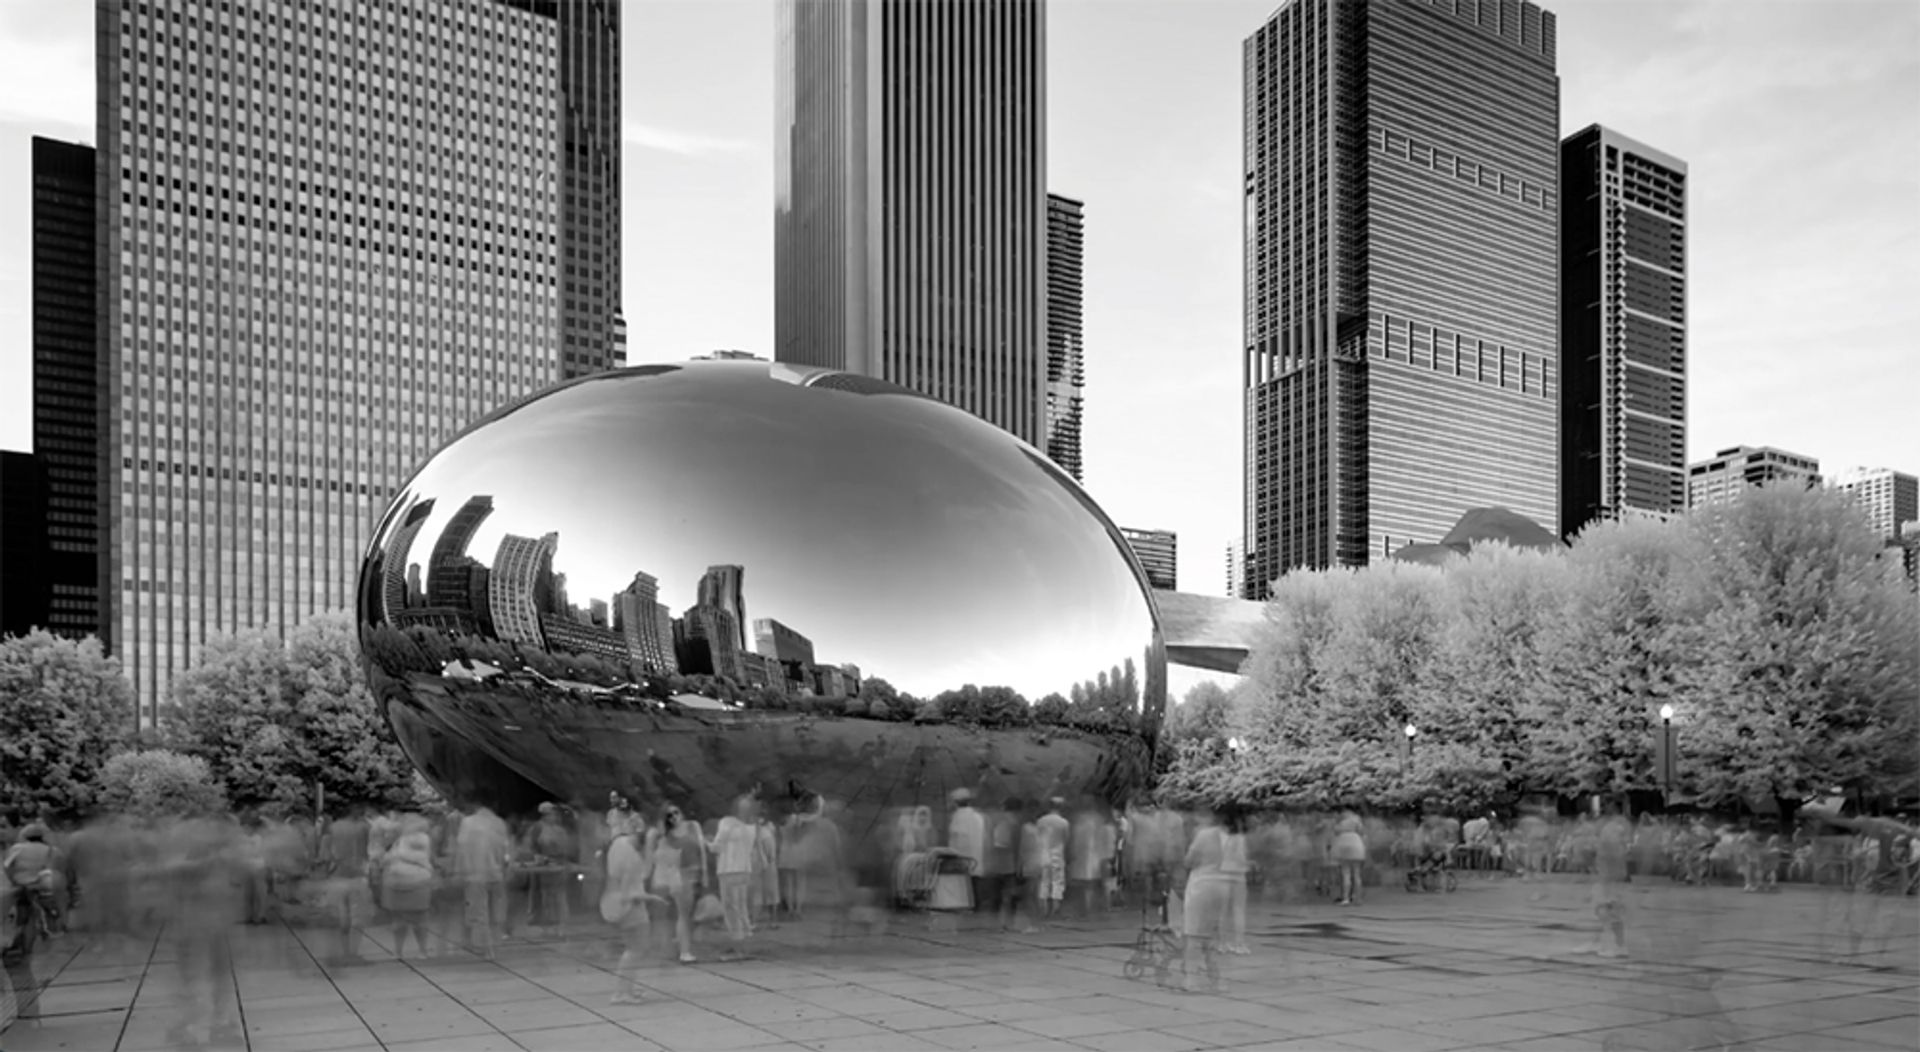 """Still from the NRA's promotional video The Violence of Lies, featuring Anish Kapoor's Chicago """"Bean"""" sculpture NRA"""